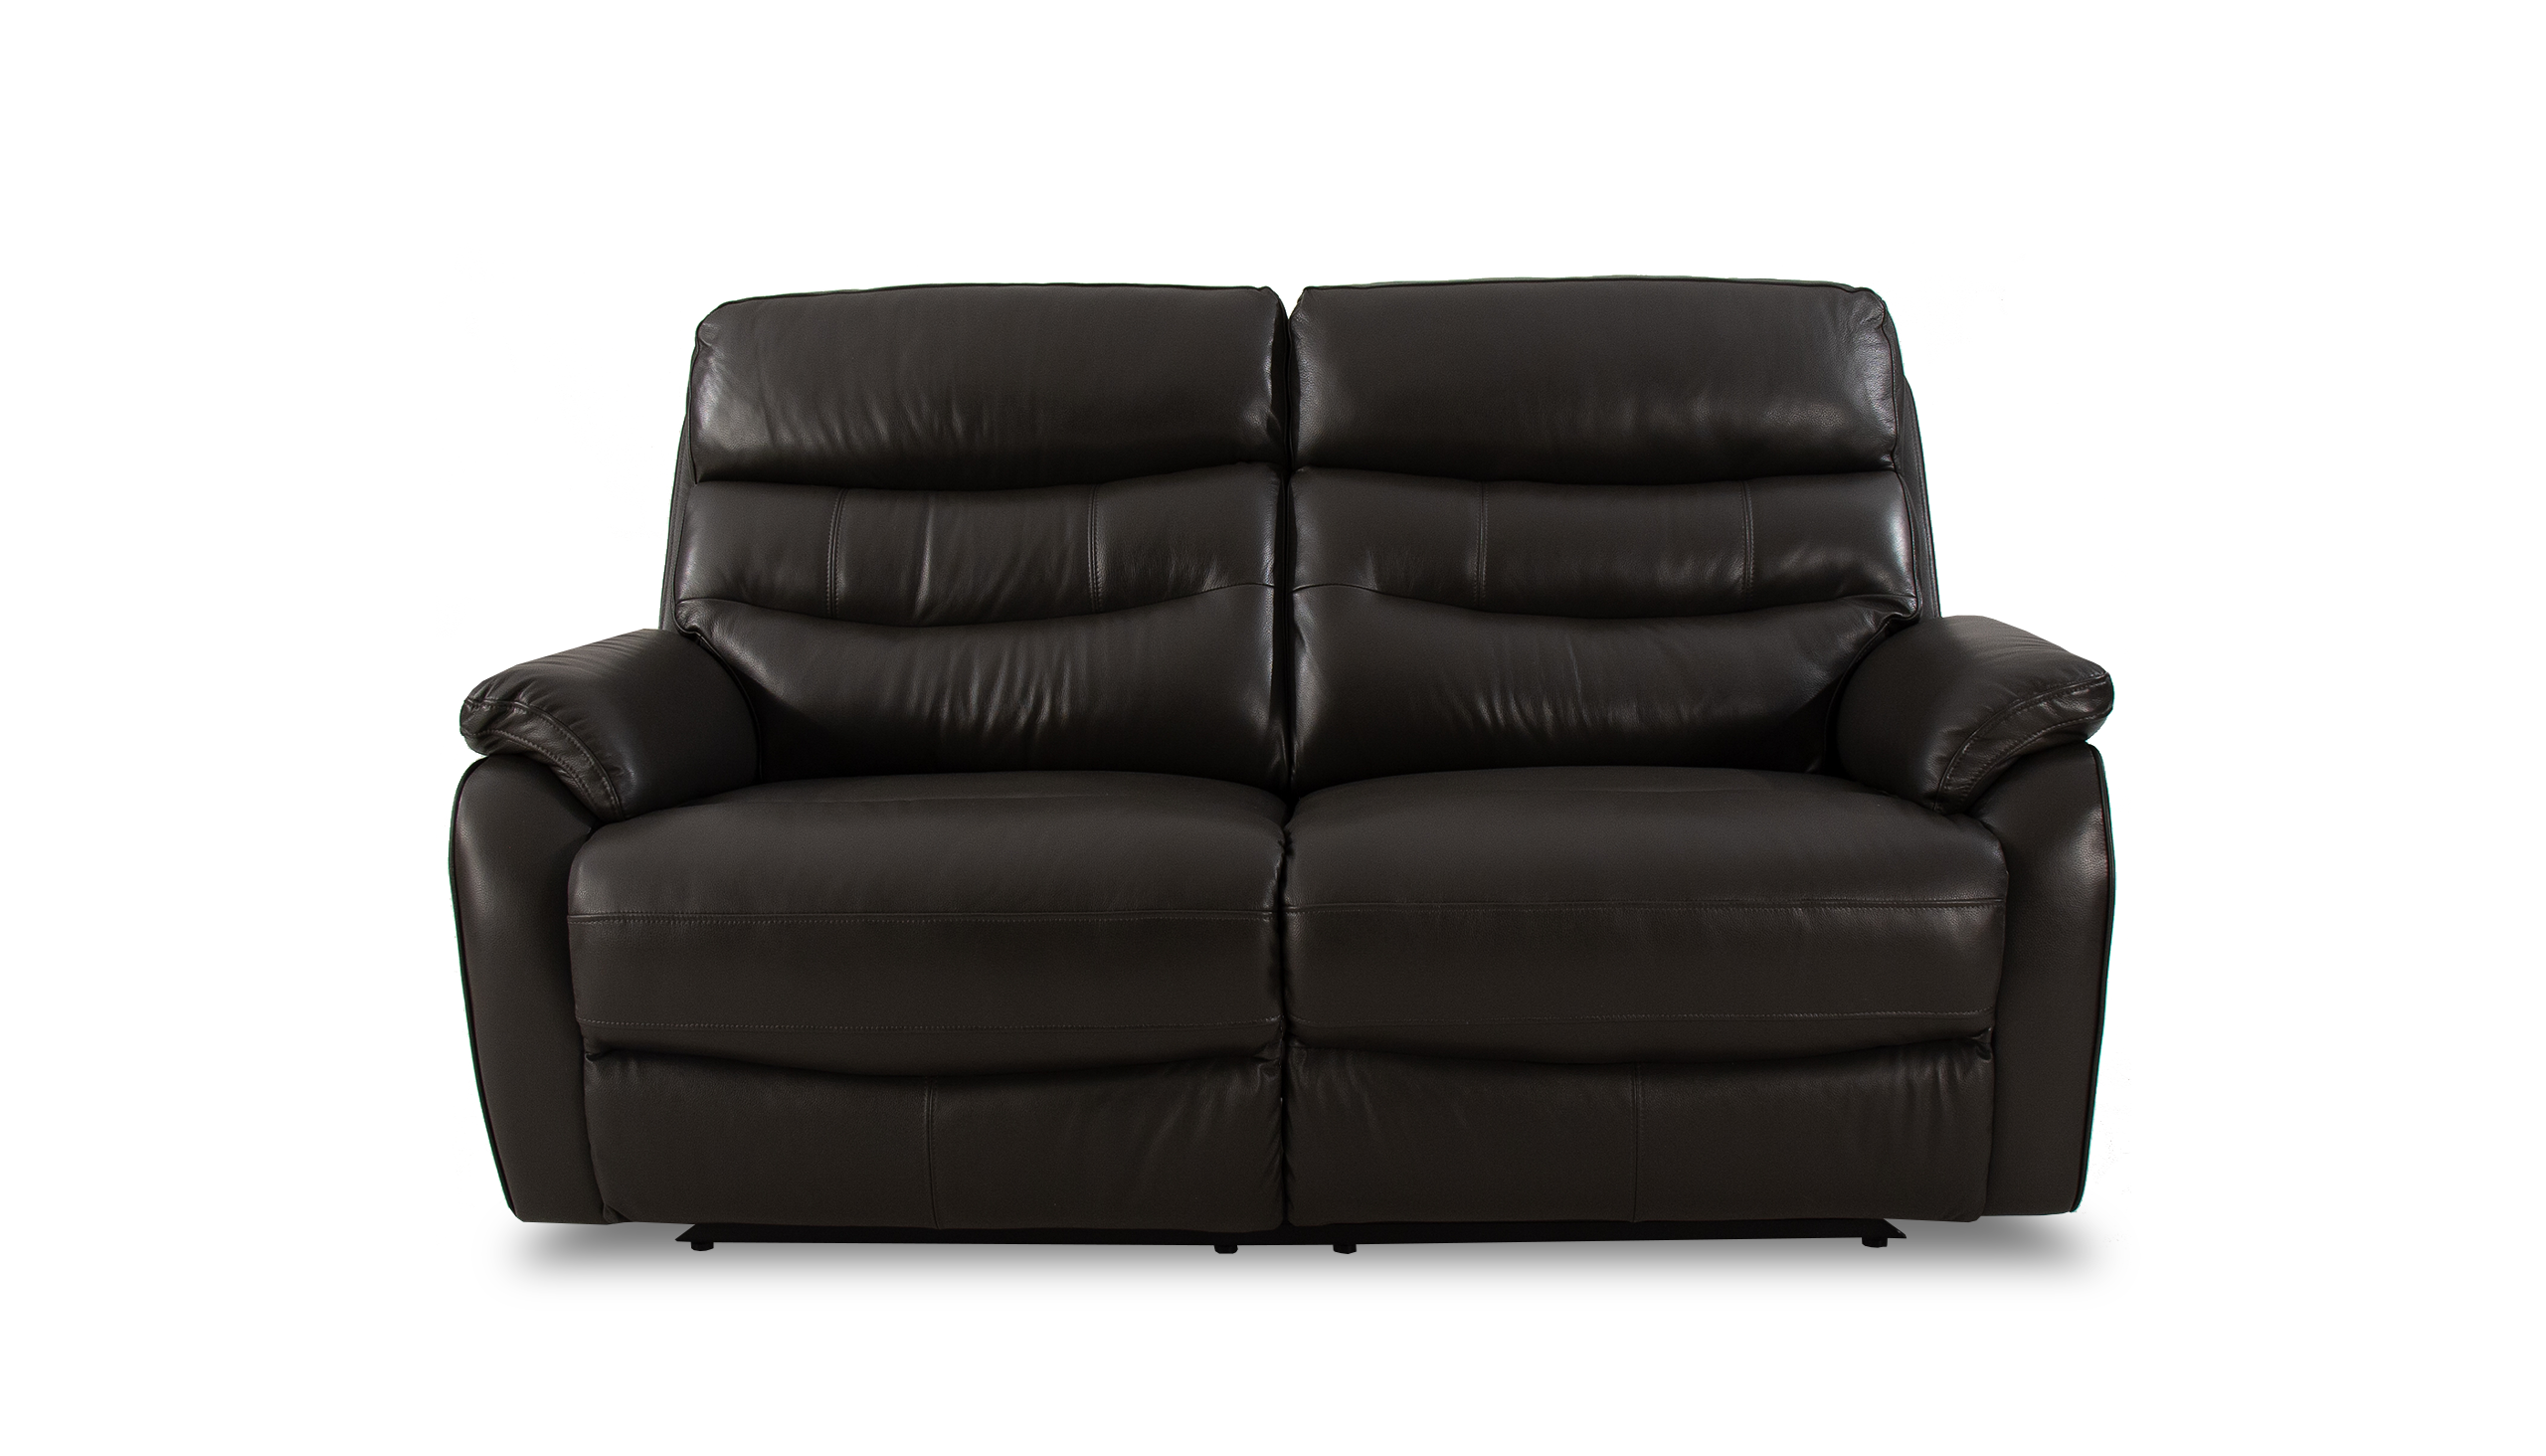 James 2 Seater Power Recliner Sofa